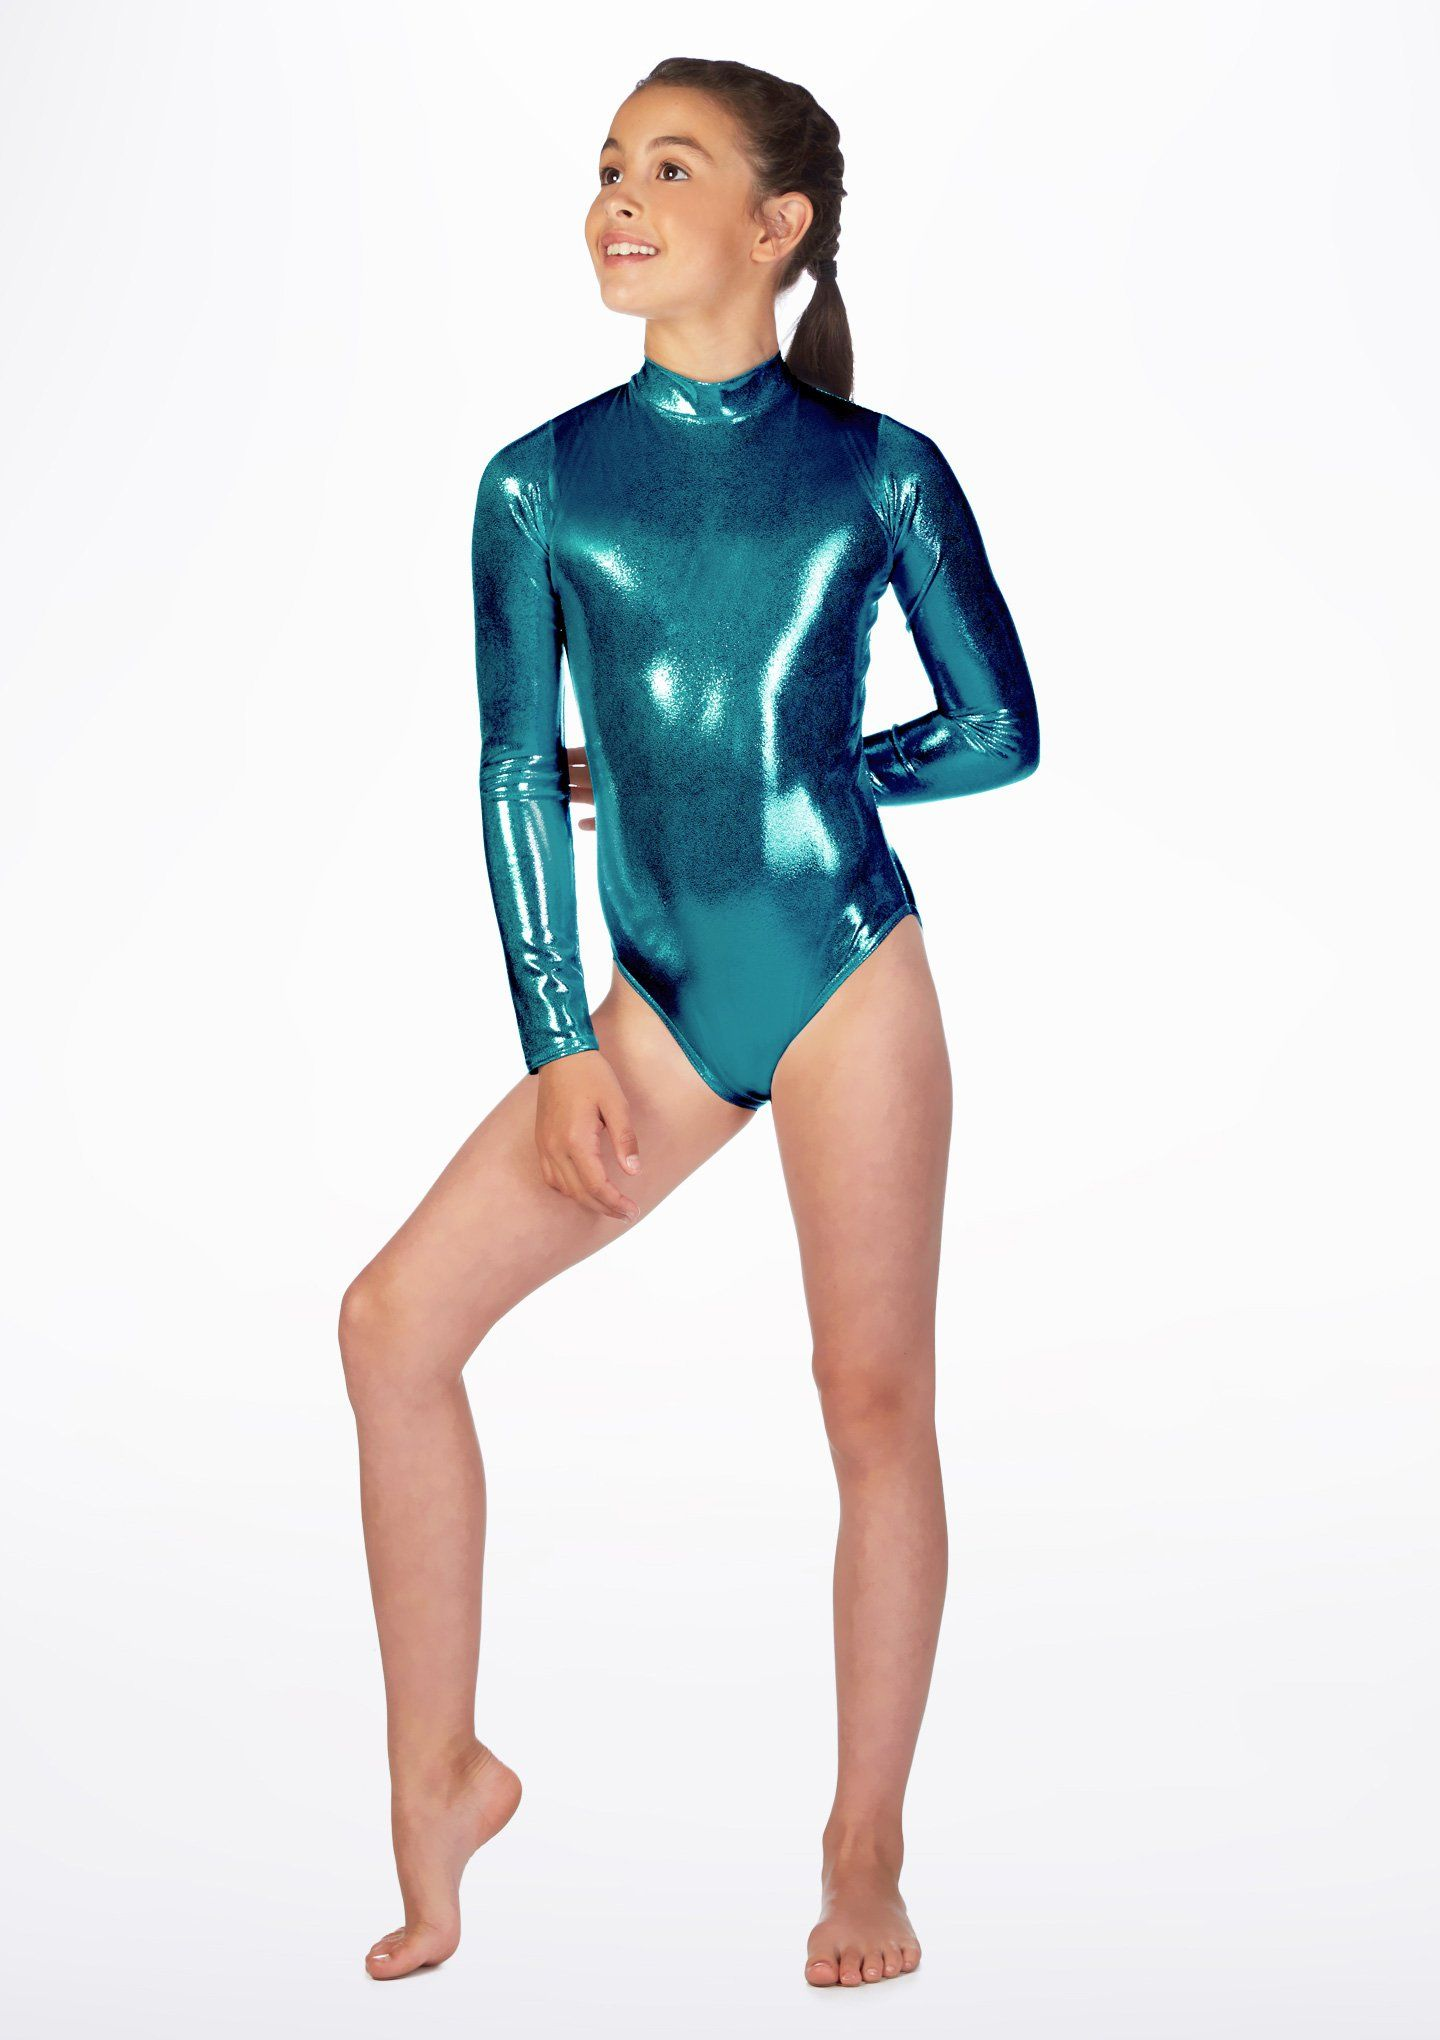 82d68e2974 Alegra Girls Metallic Ashlyn Leotard | Gym | Leotards, Childrens ...